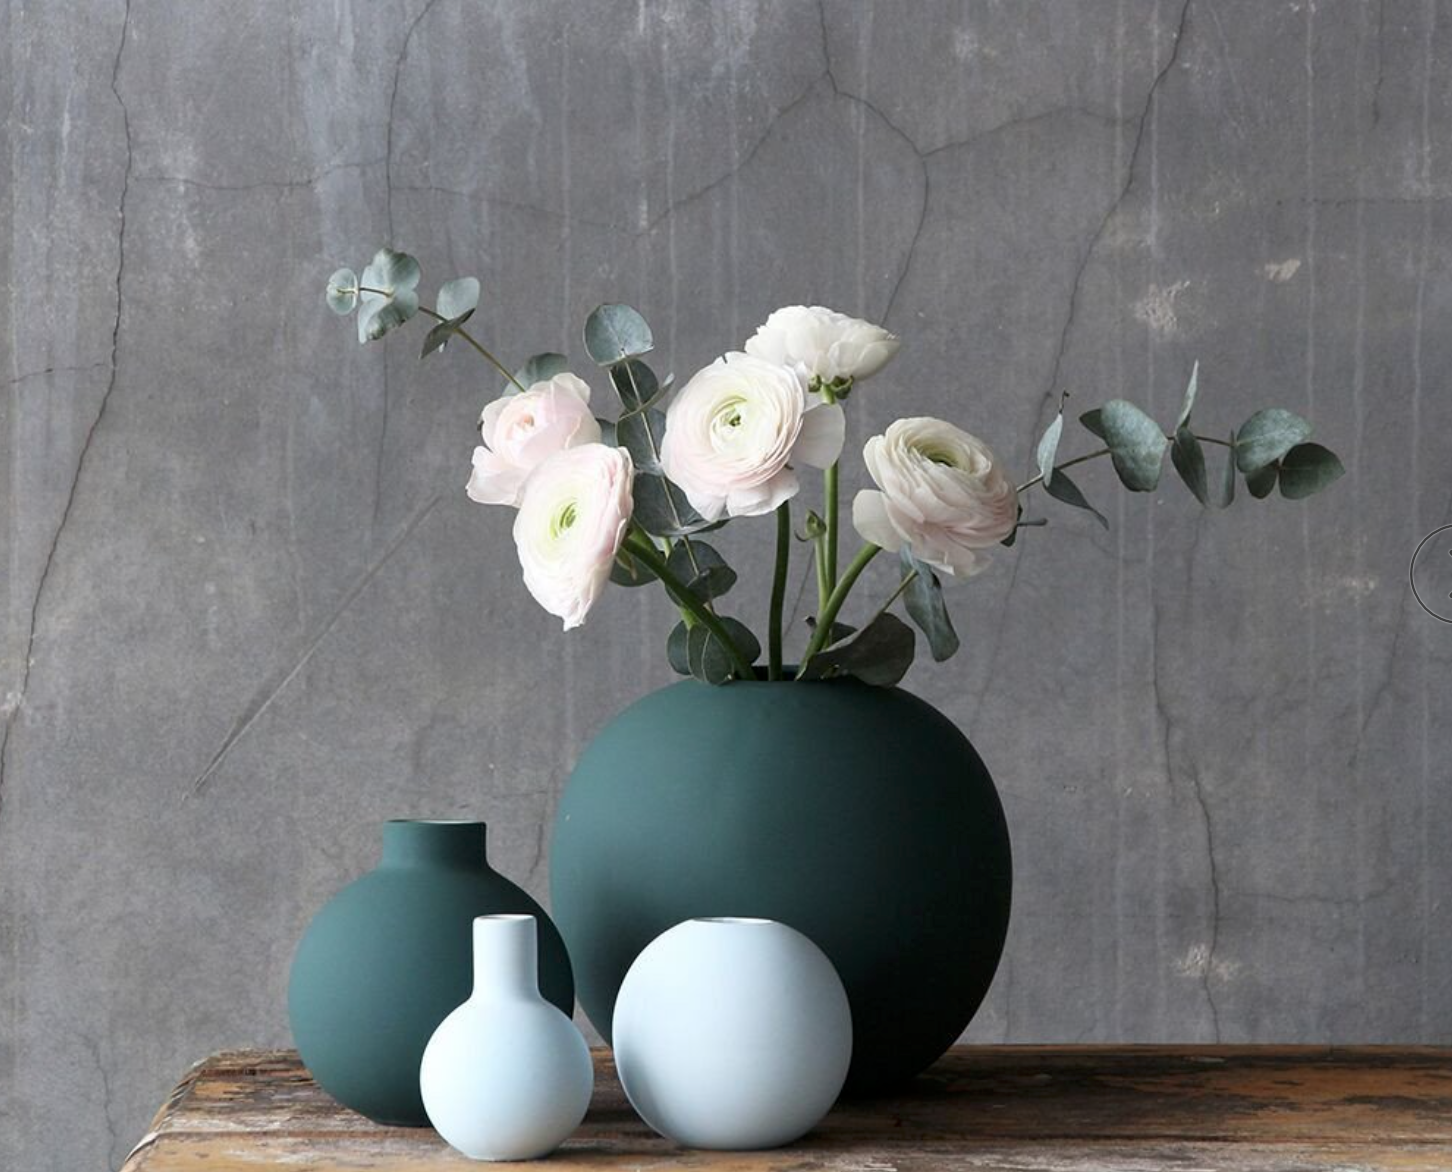 Hand made ceramic Ball vase, 20cm diameter, by Cooee Design in dark matt finish fir green.